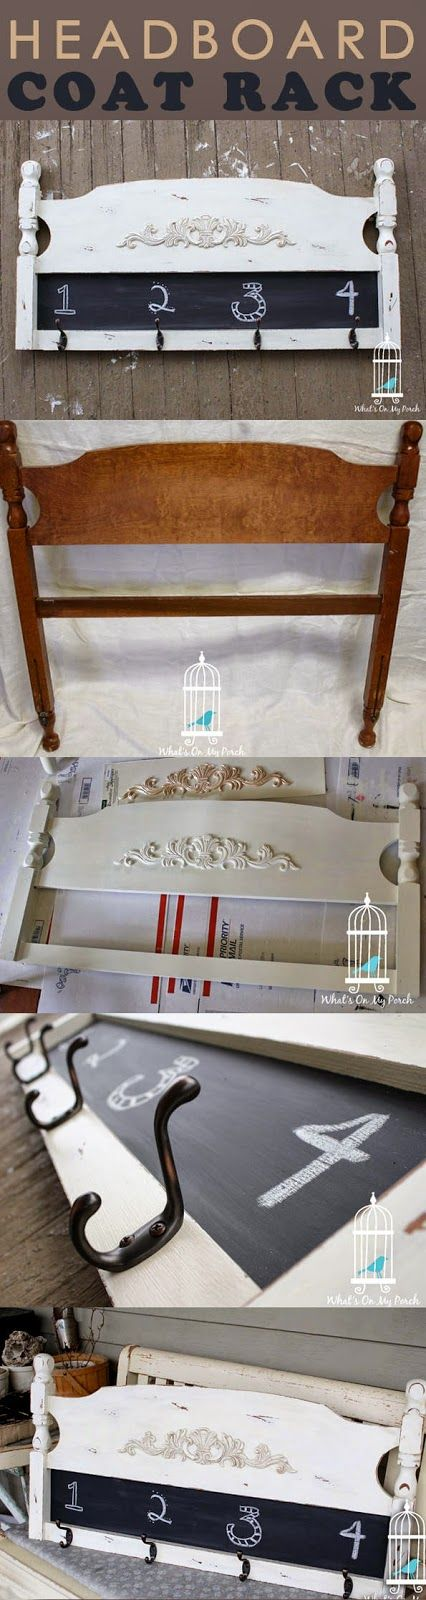 What's On My Porch: Headboard Coat Rack